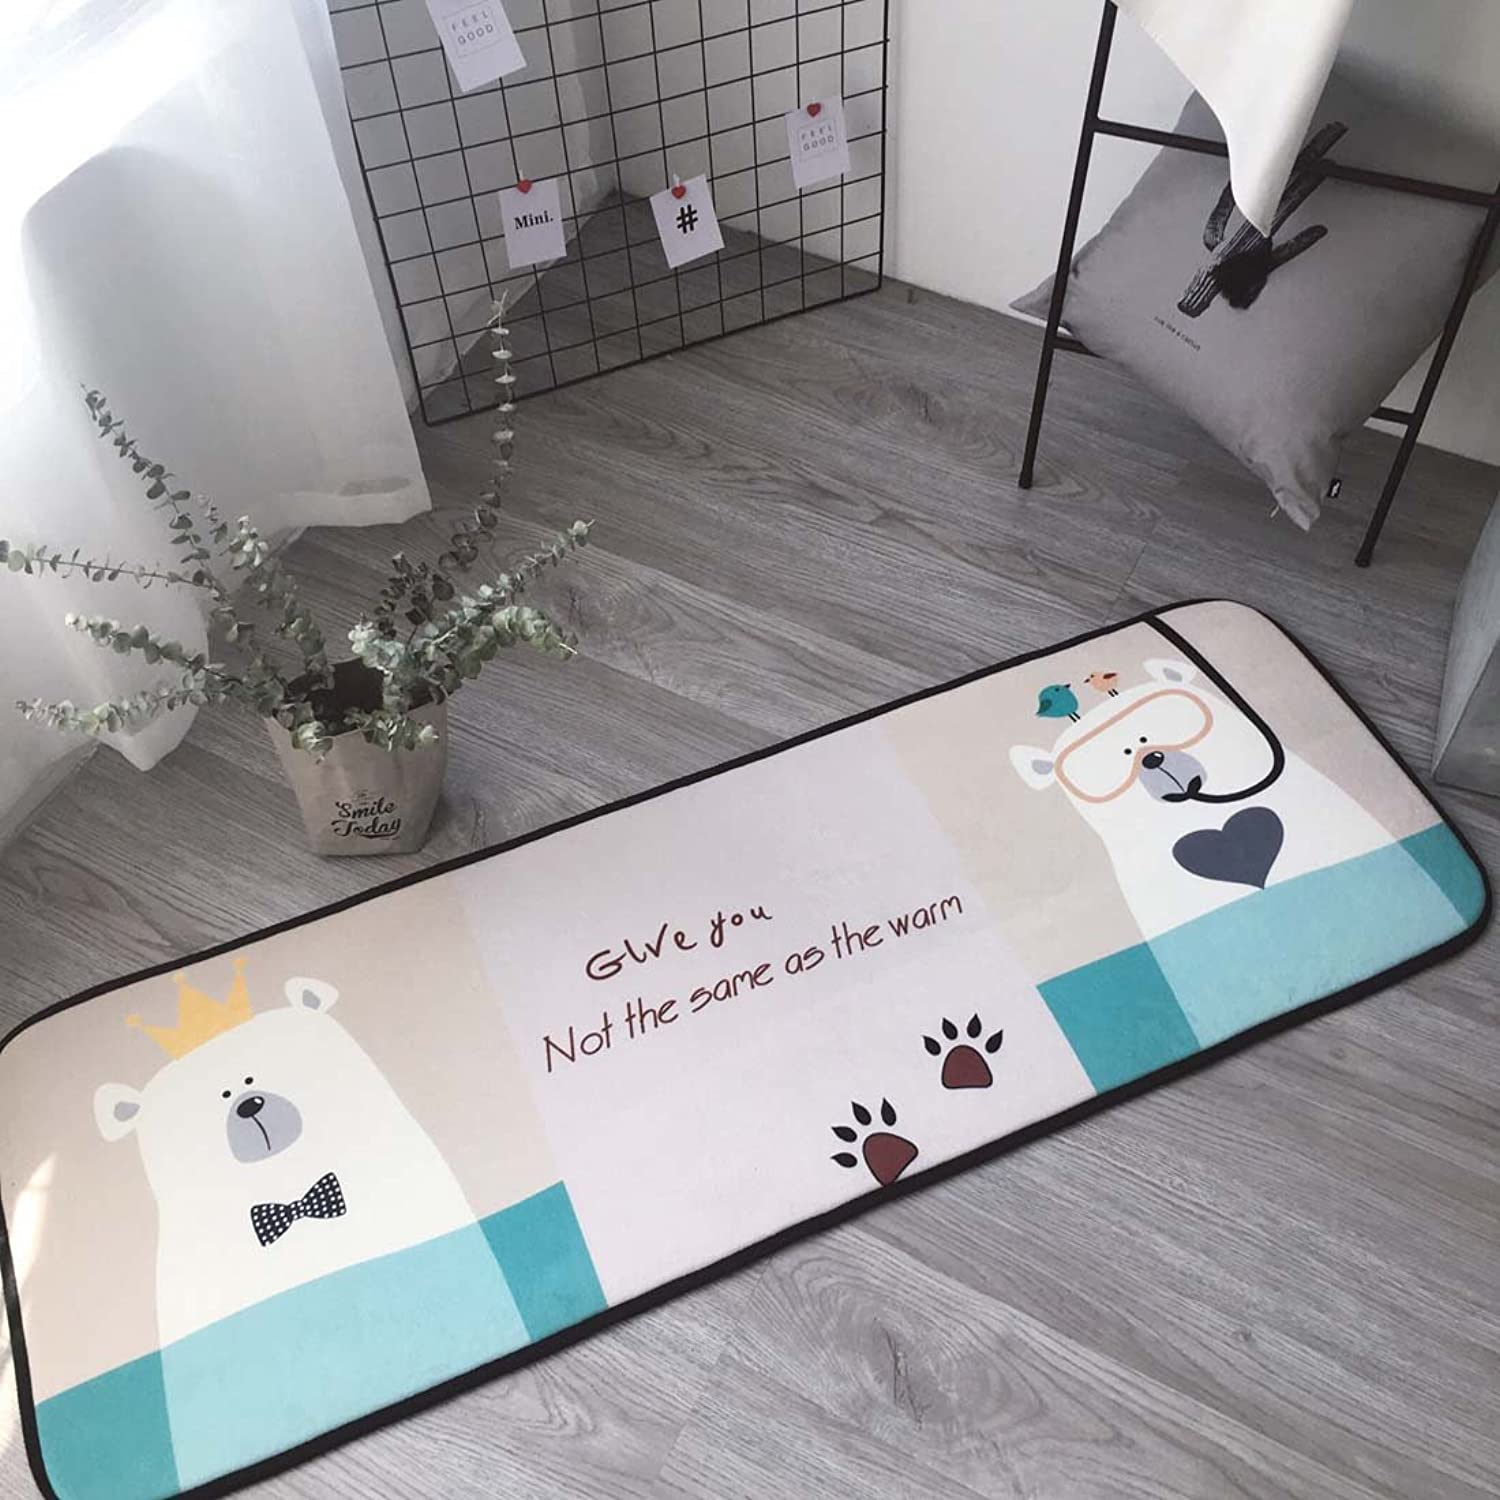 Babe MAPS Indoor Outdoor 2PCS Doormat Entrance Welcome Mat Absorbent Runner Inserts Non Slip Entry Rug Funny Cute Bear, Home Decor Inside shoes Scraper Floor Carpet 19 x27  19 x58